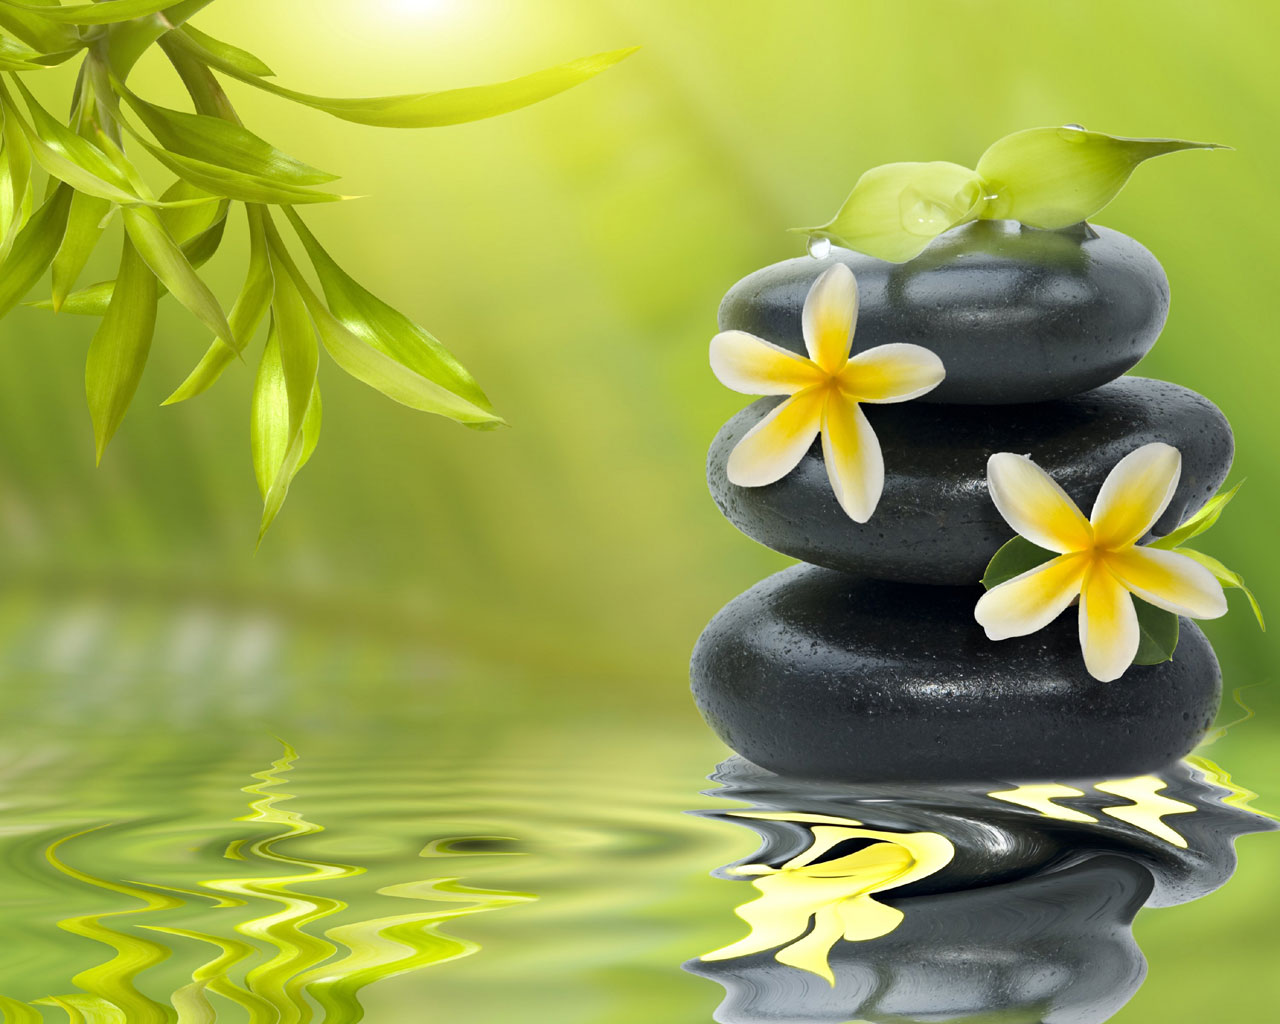 Zen Meditation HD Wallpaper Download 1280x1024